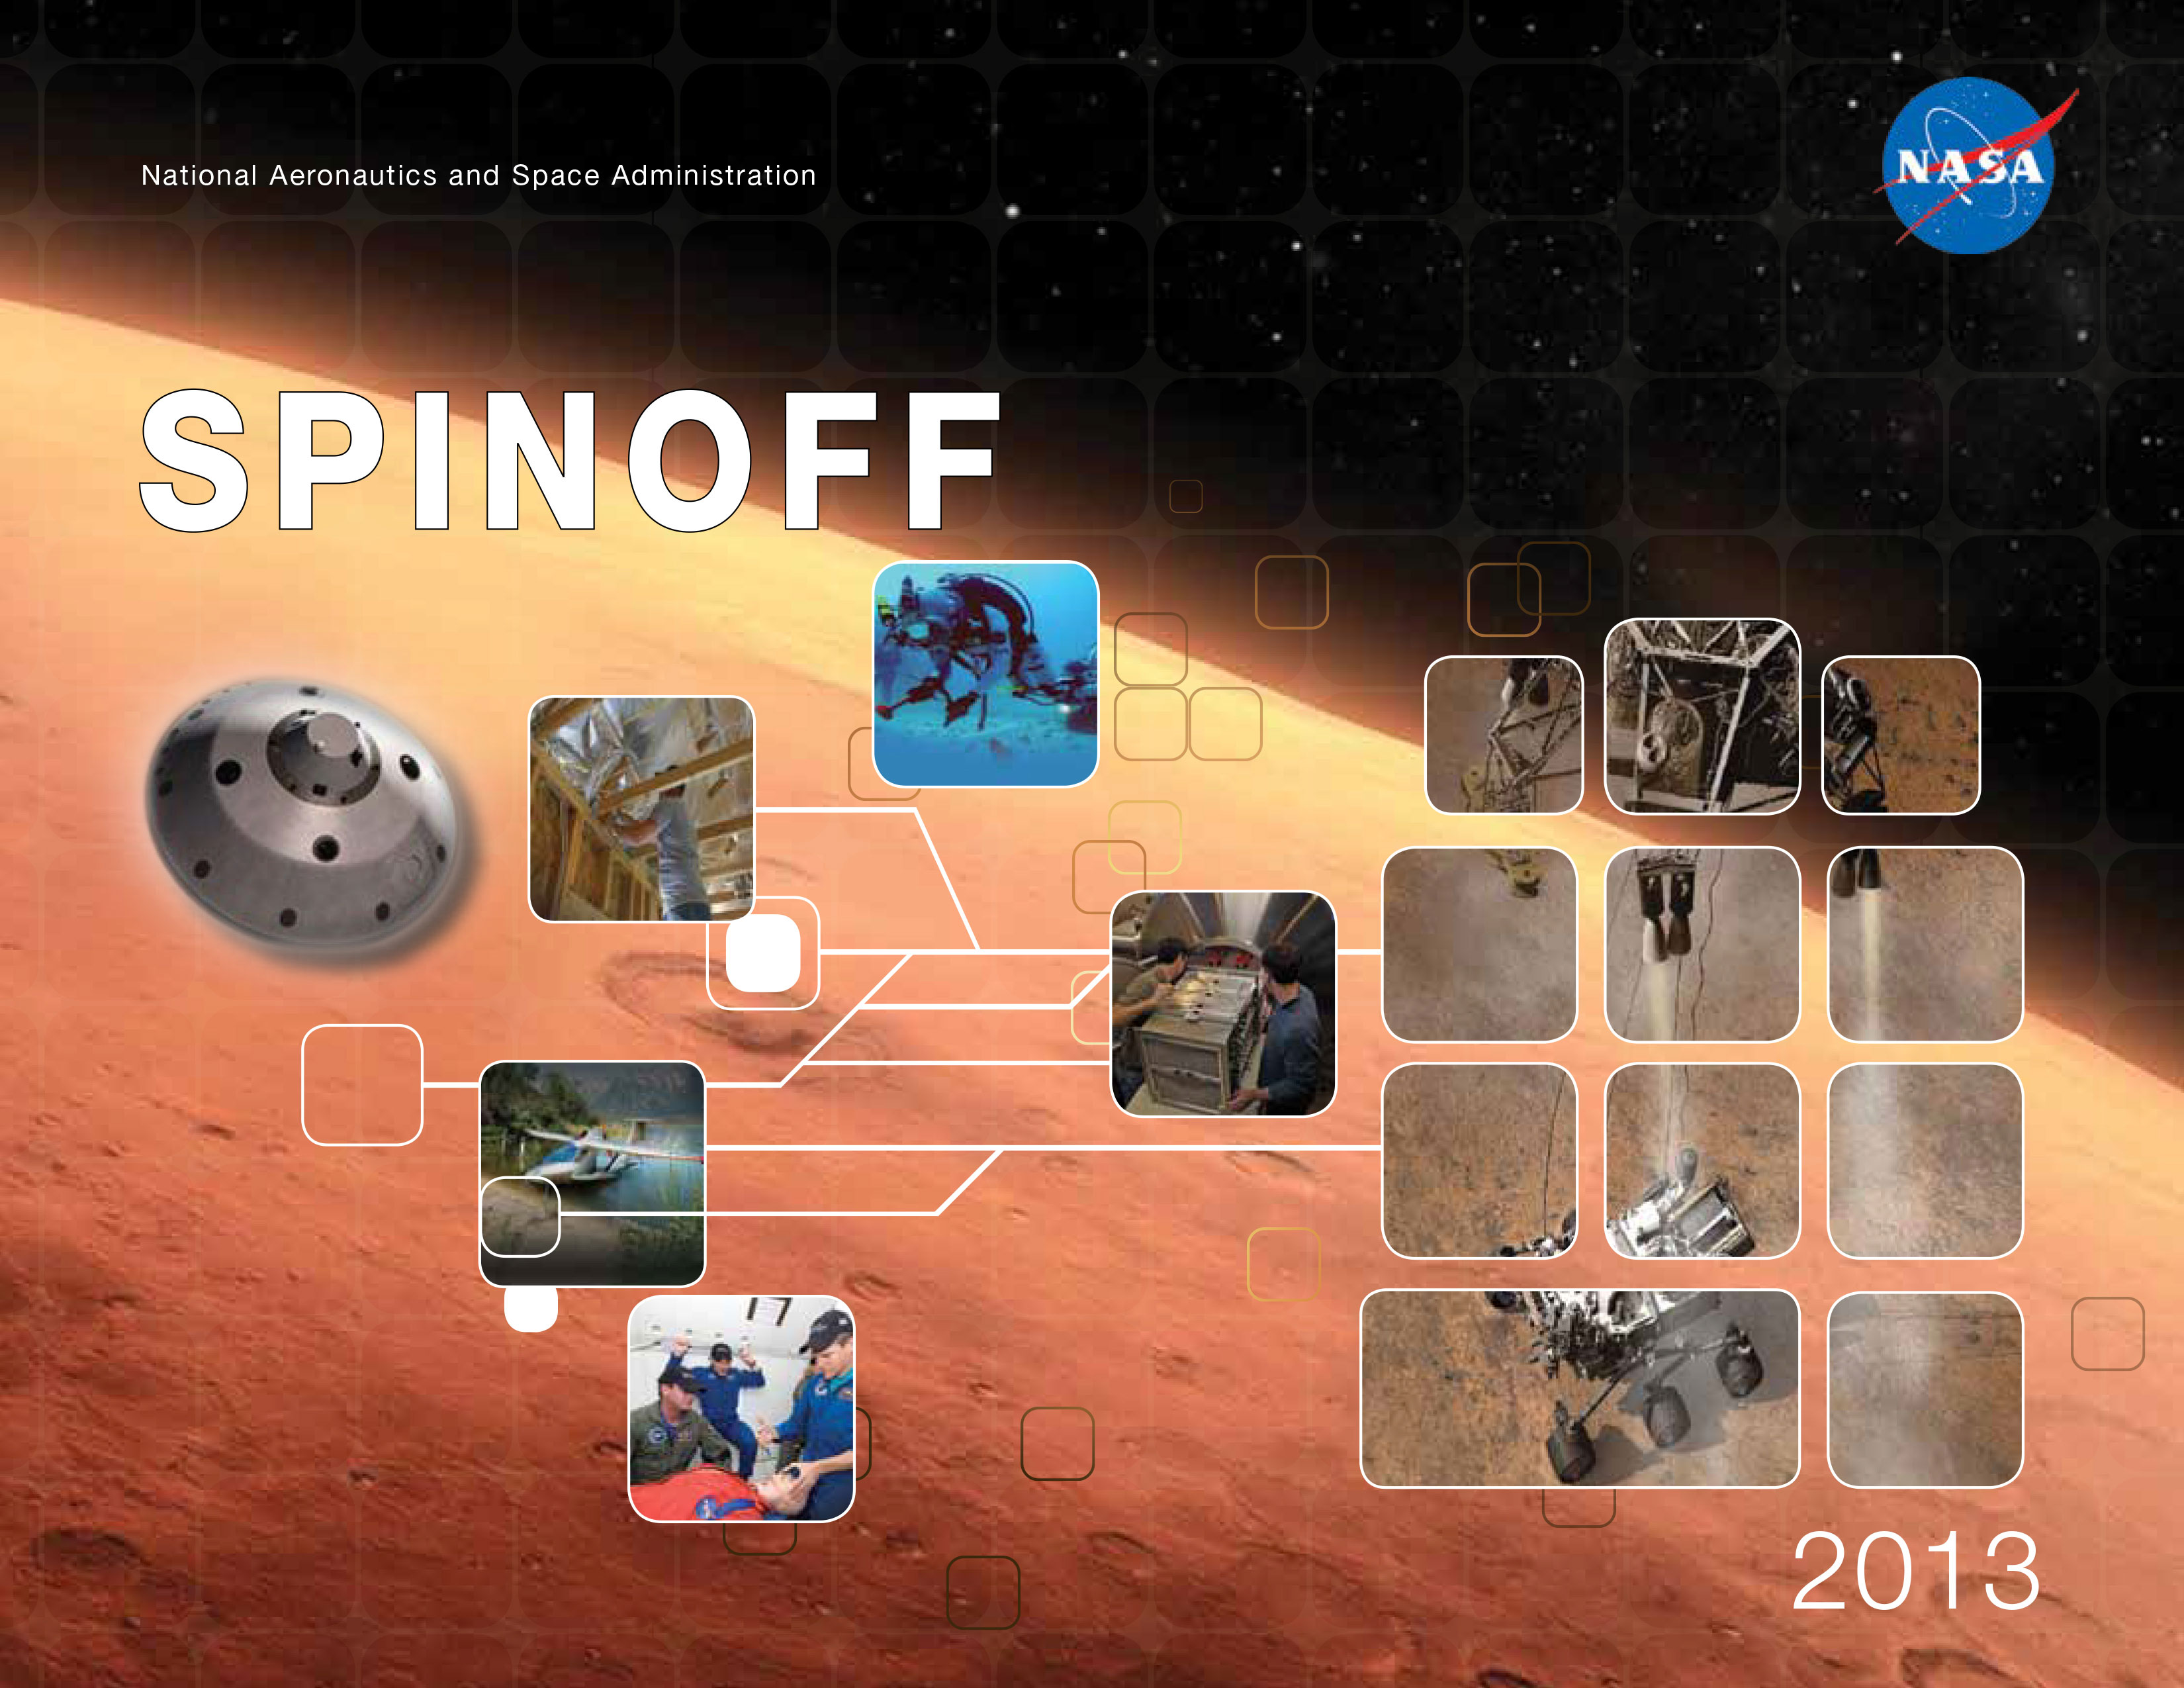 NASA-developed space technologies benefit those of us here on Earth. Credit: NASA